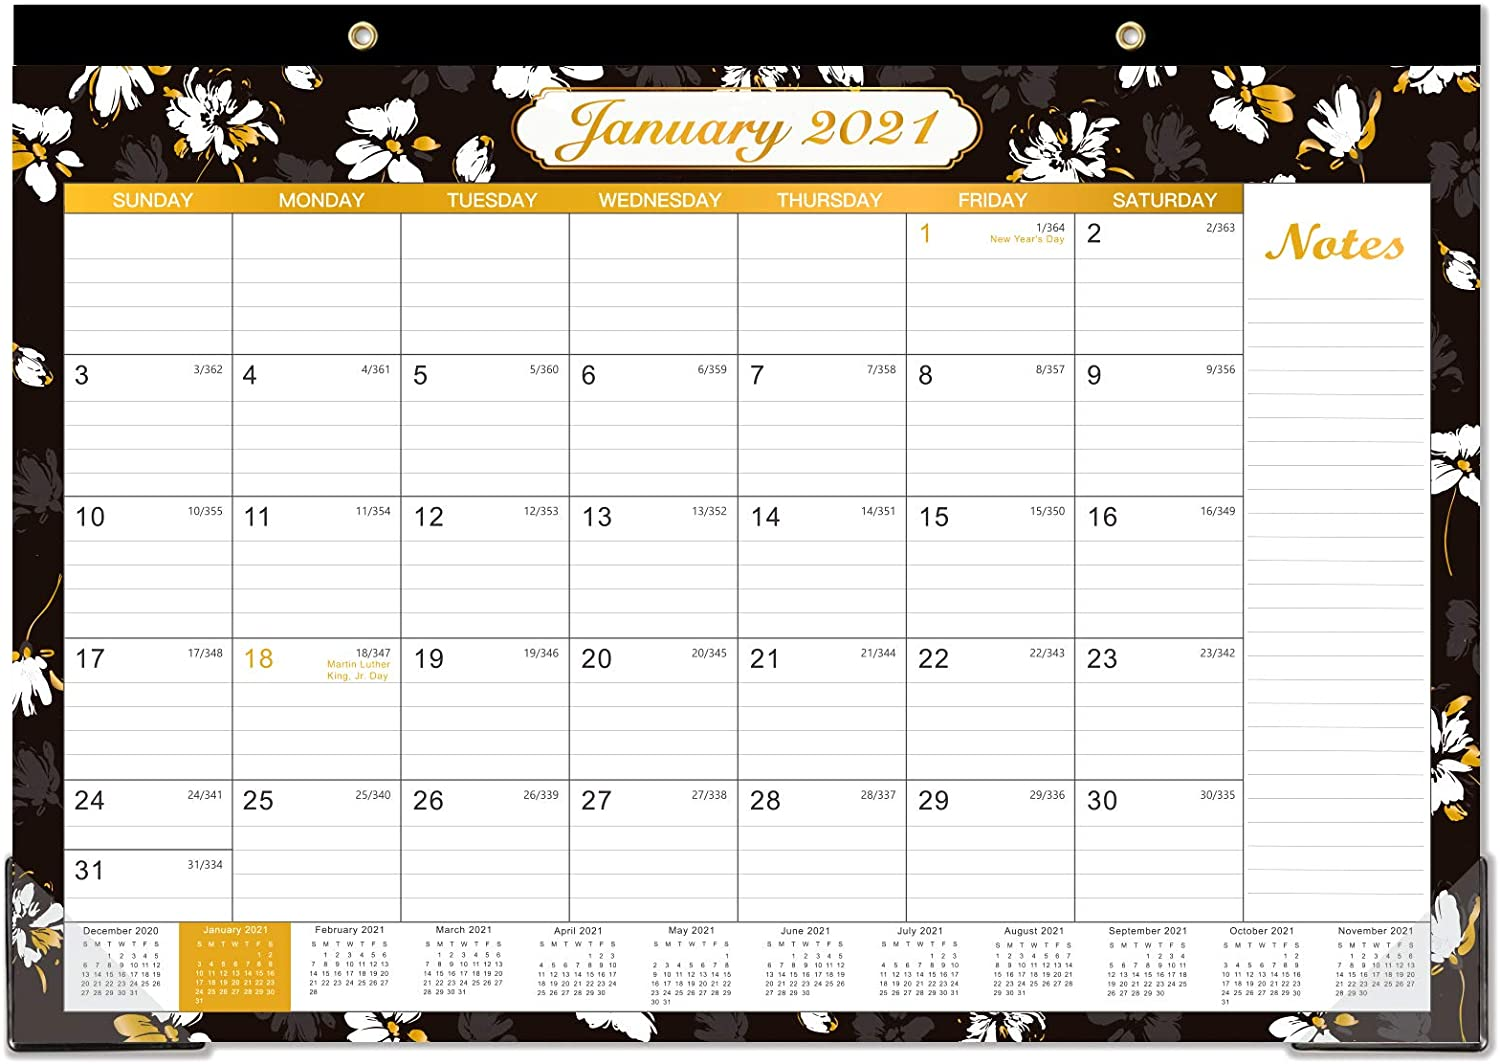 Teacher Dec 2021 Student Ruled Blocks 2021 Desk Calendar Thick Paper for Planning and Organizing 17 x 12 Large Desk Pad Calendar for Office 12 Months Wall Monthly Calendar Jan 2021 Home